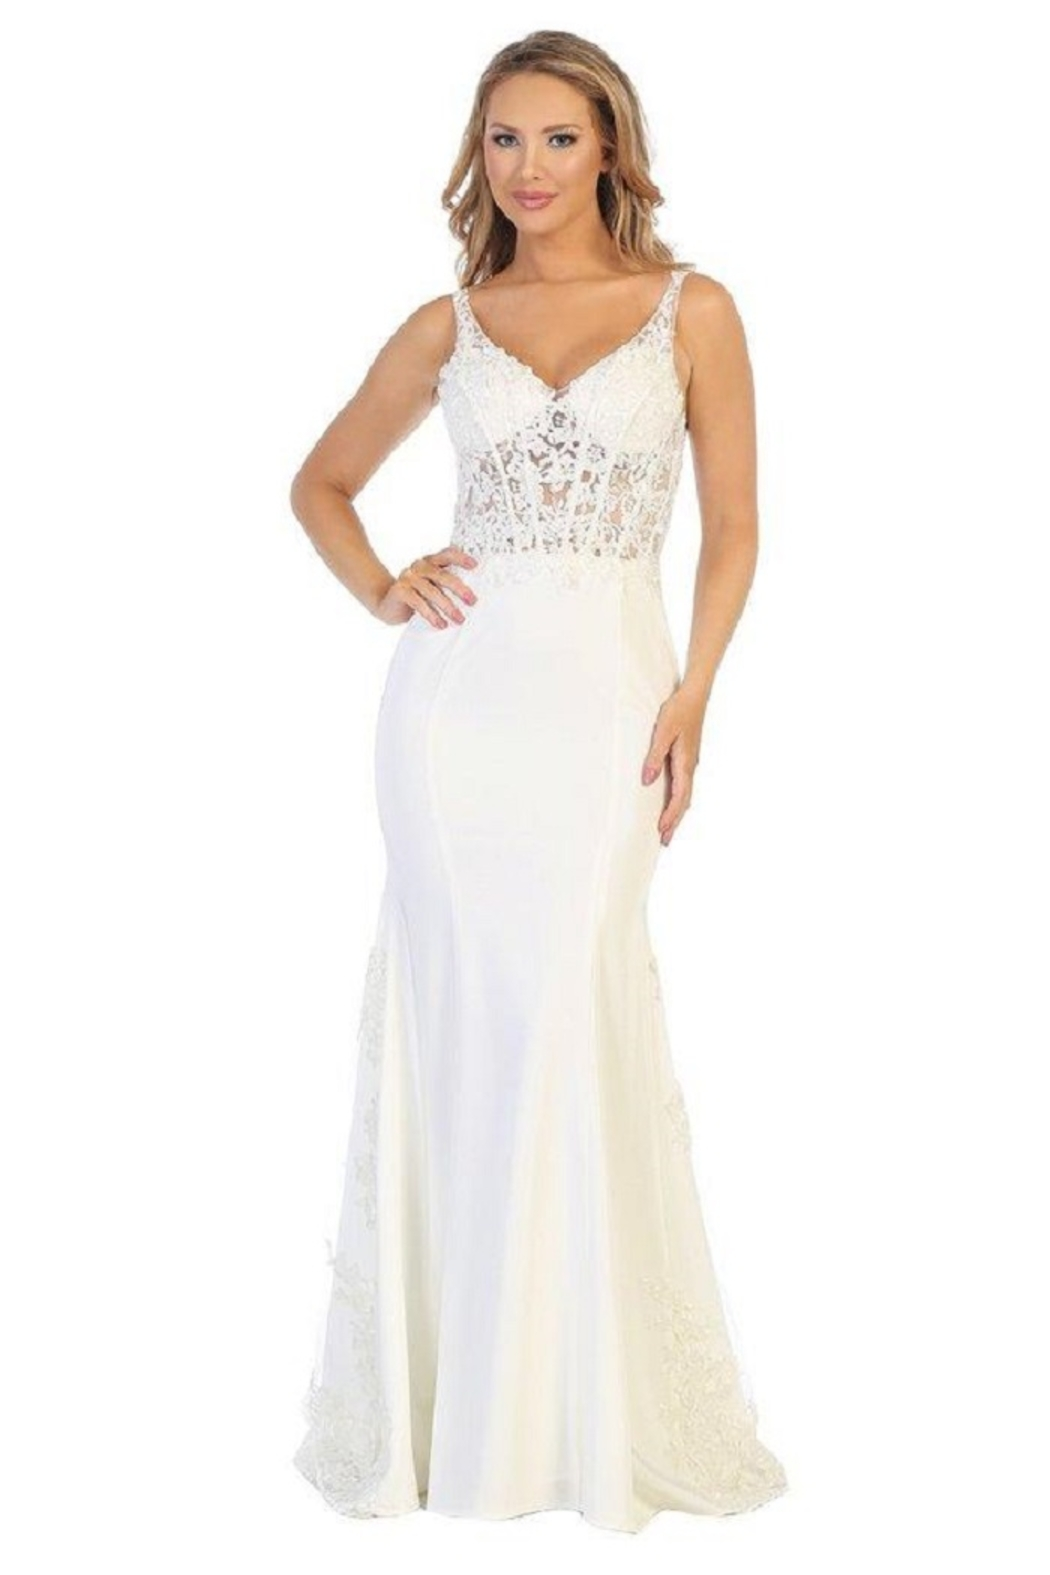 Let's Off White Lace Fit & Flare Bridal Gown - Main Image